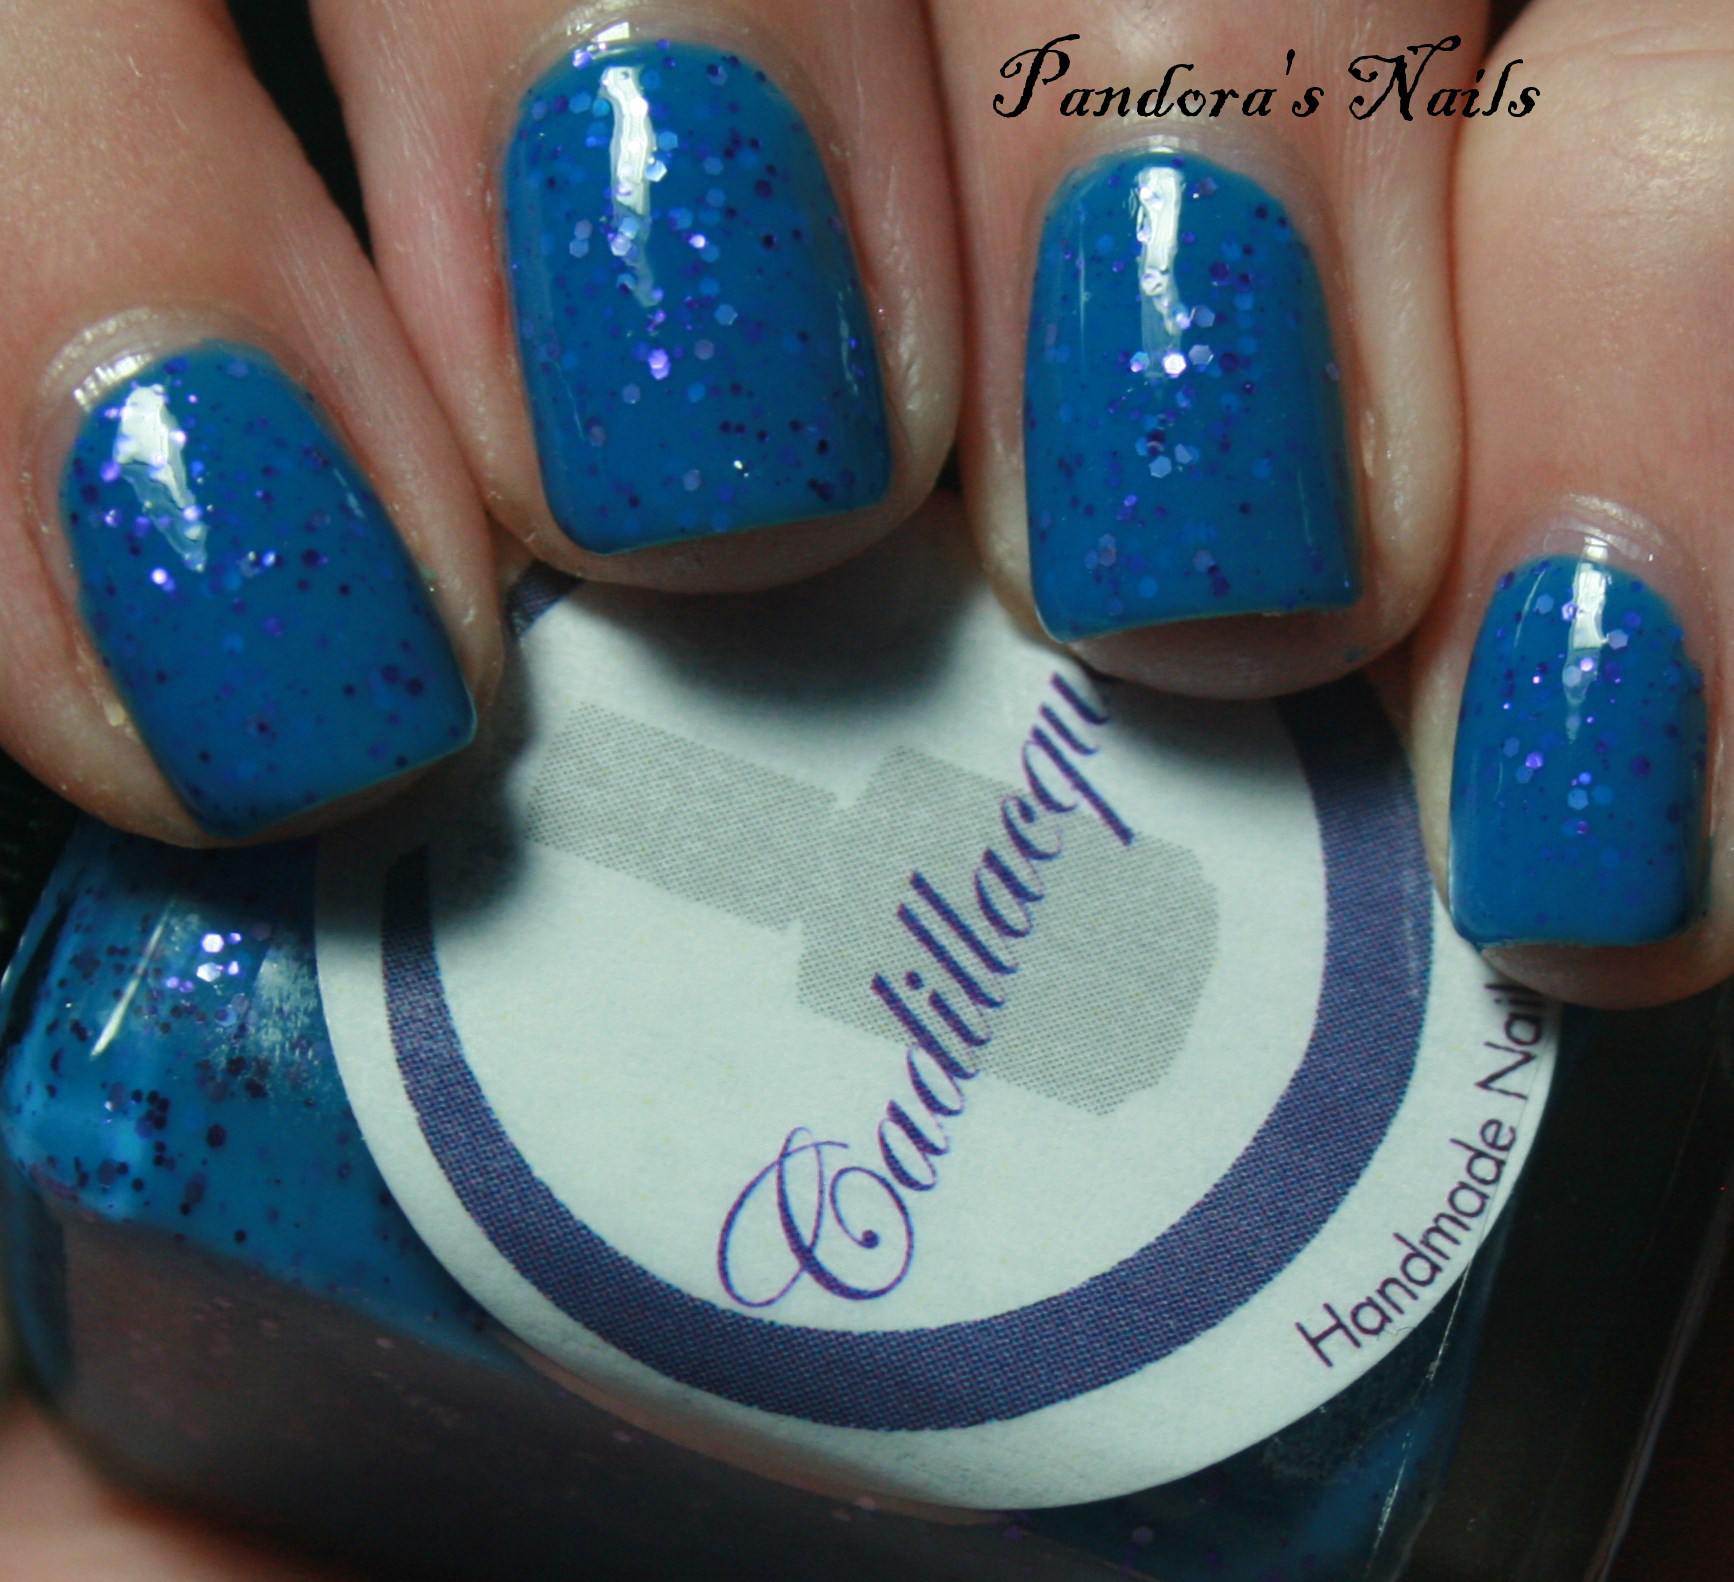 cadillacquer what's in the box (2)